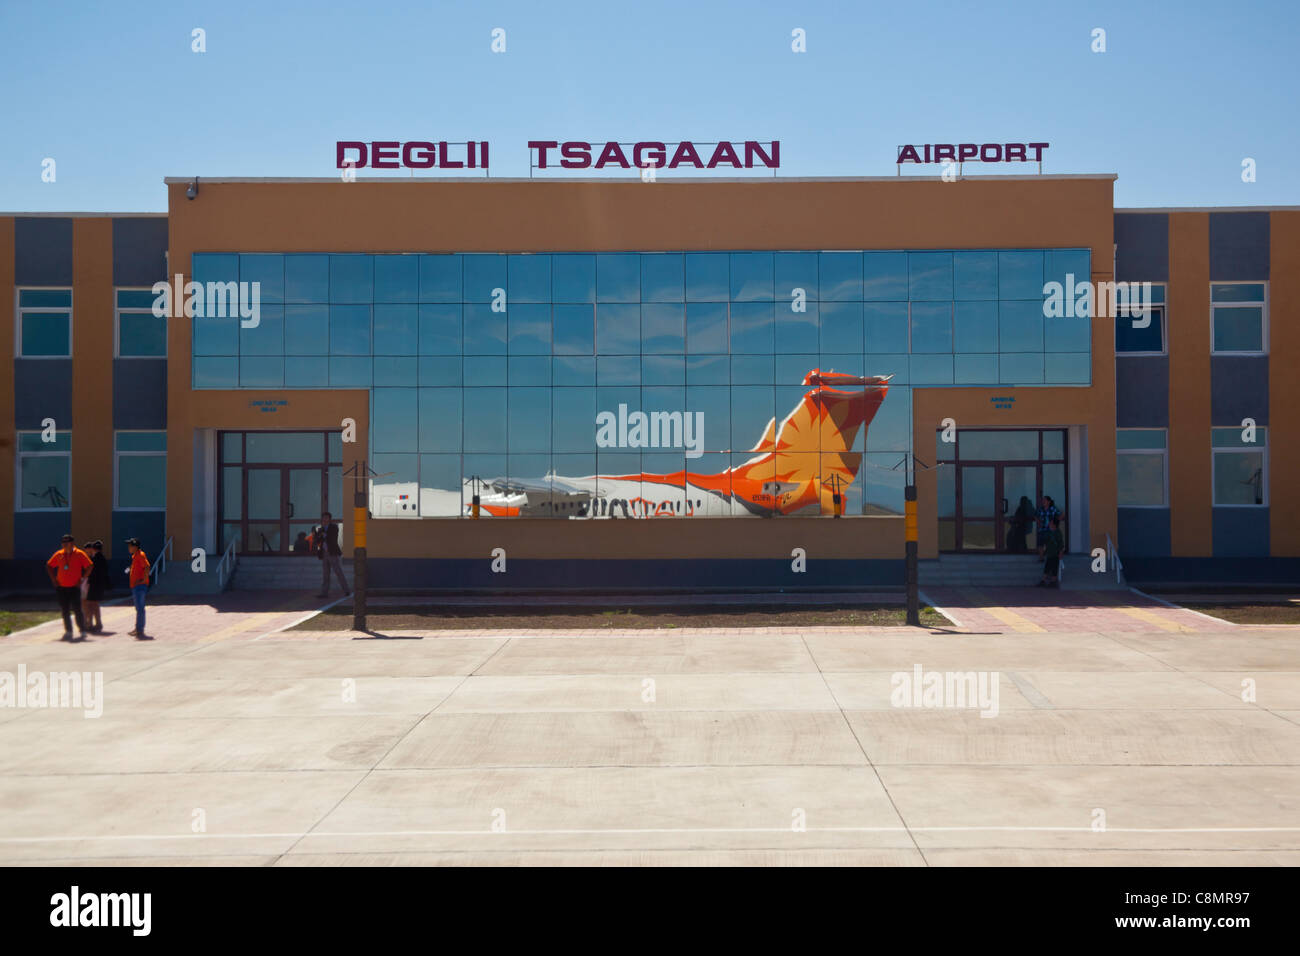 Deglii Tsagaan airport in Mongolia with plane reflected in glass terminal Stock Photo